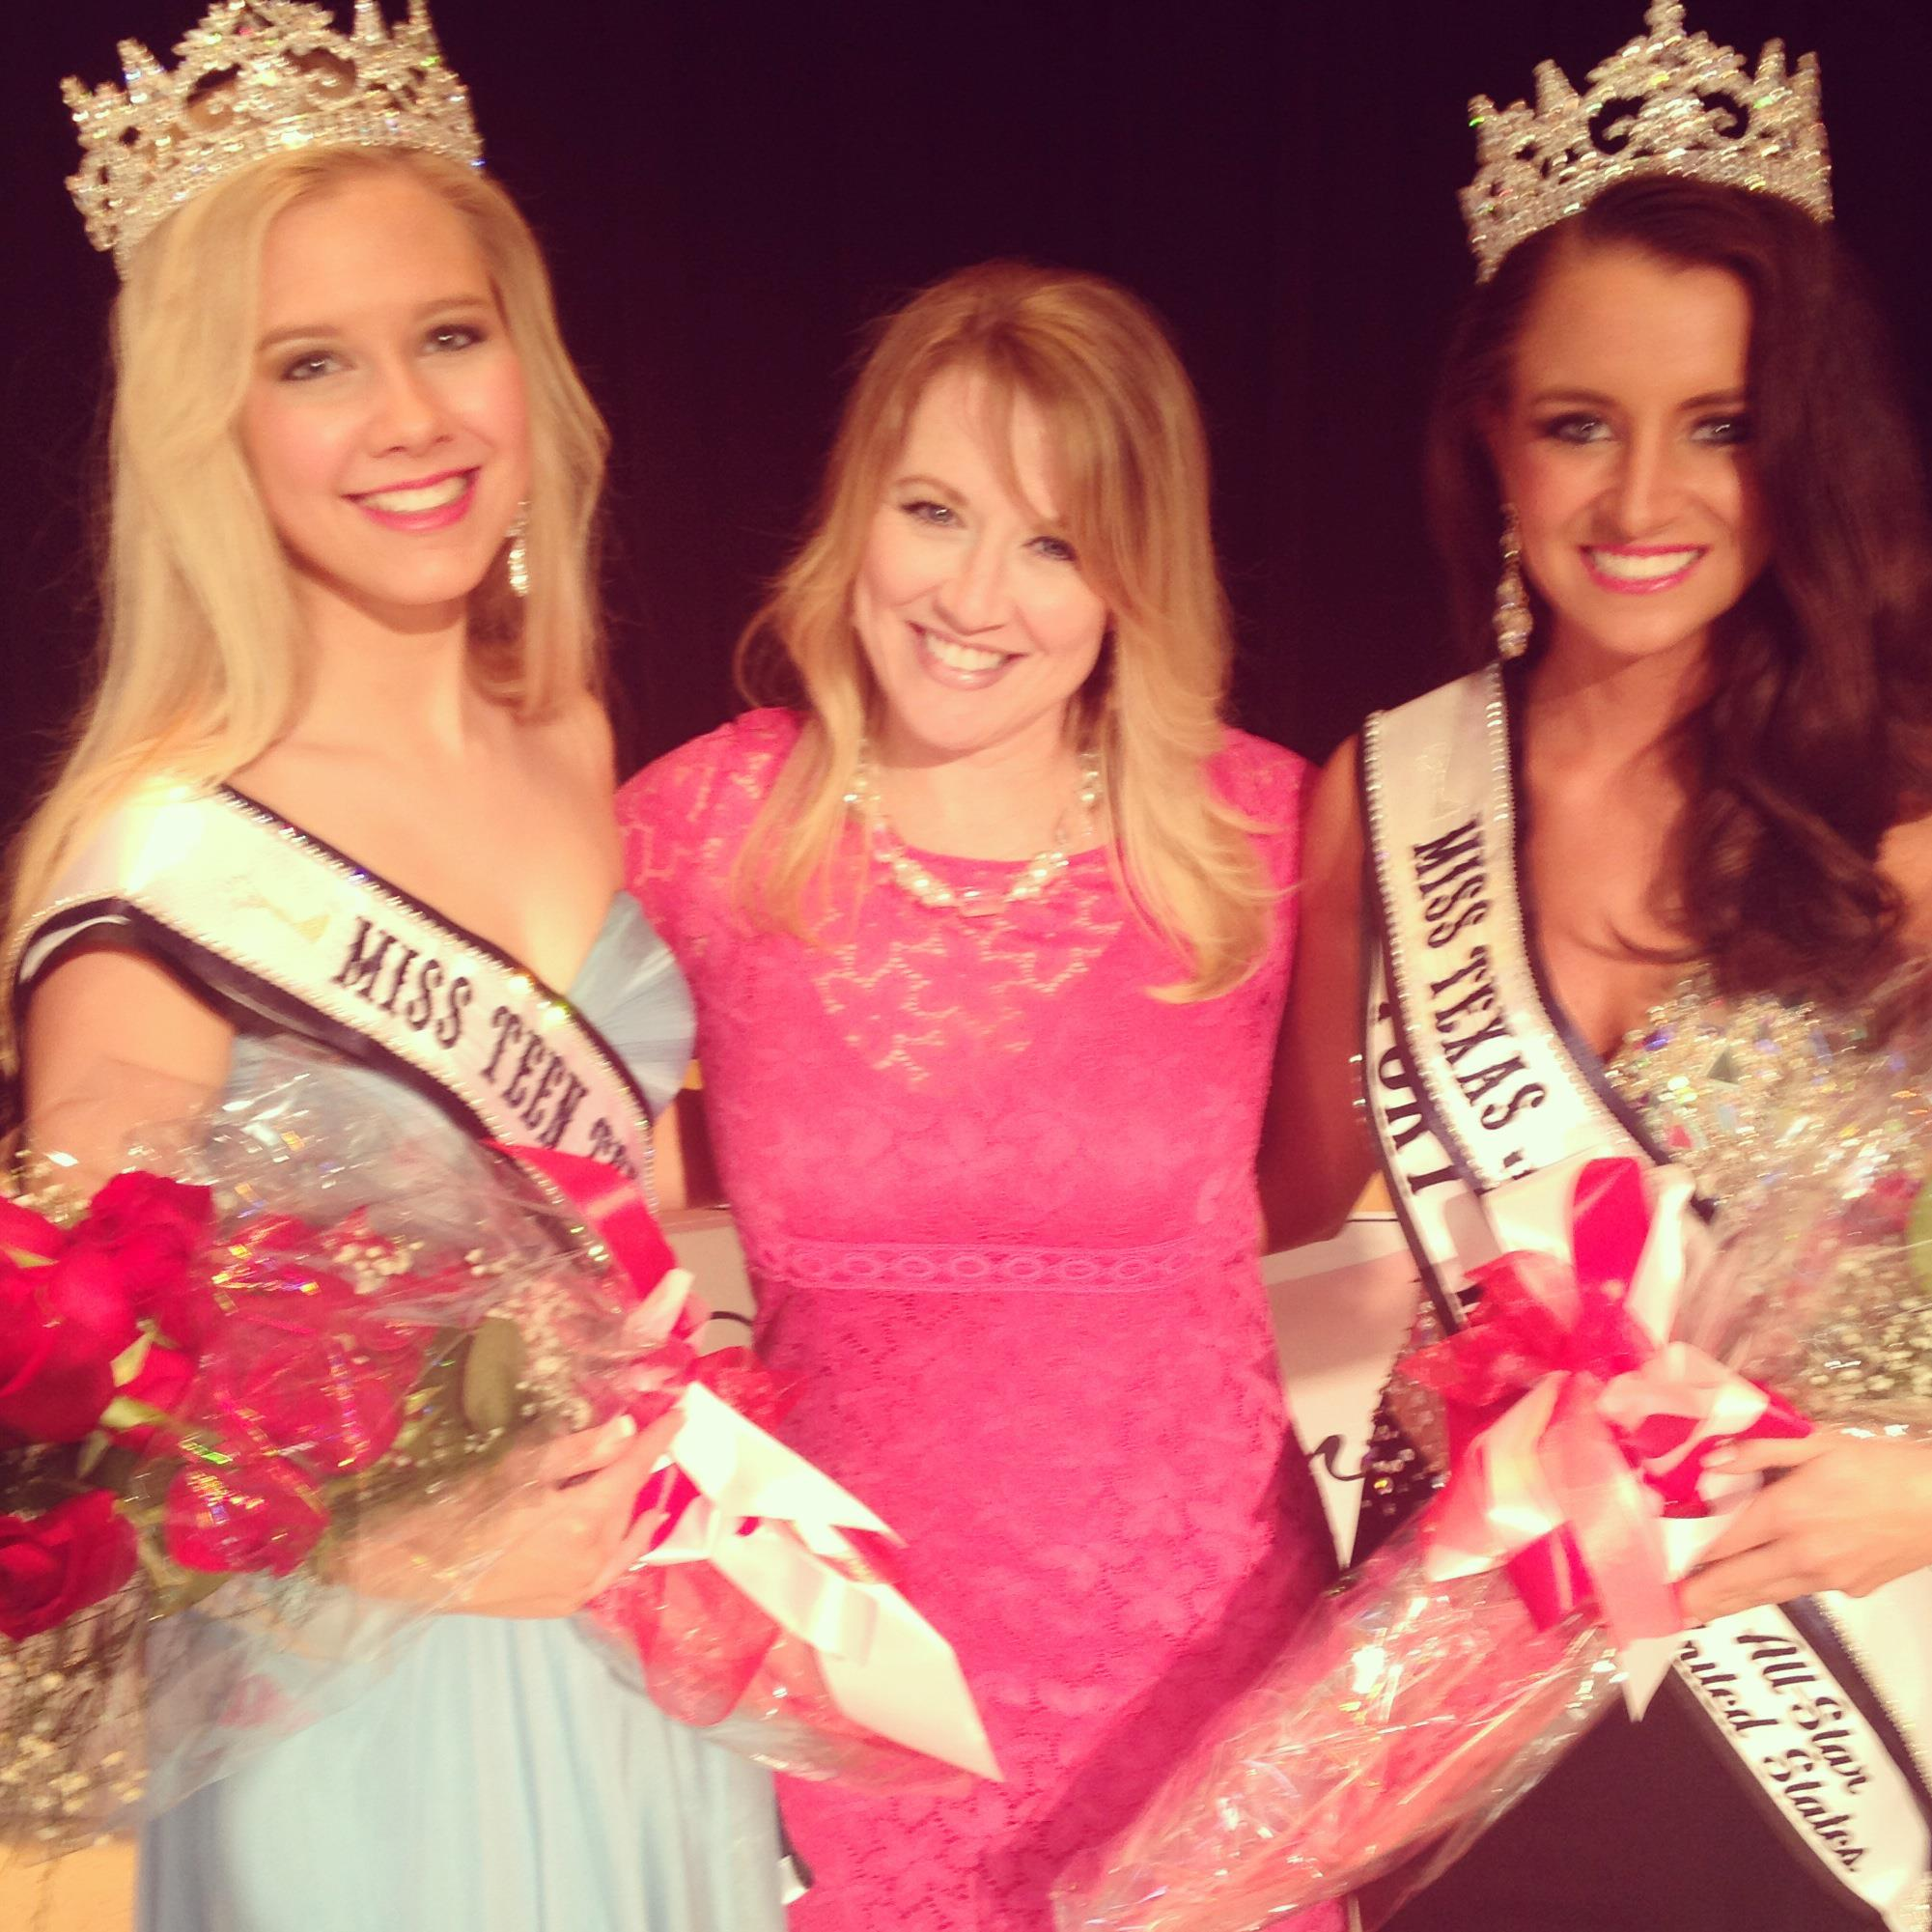 Kelly with Malori Carlow, Miss Teen Texas All-Star United States and Molly Woehl, Miss Texas All-Star United States